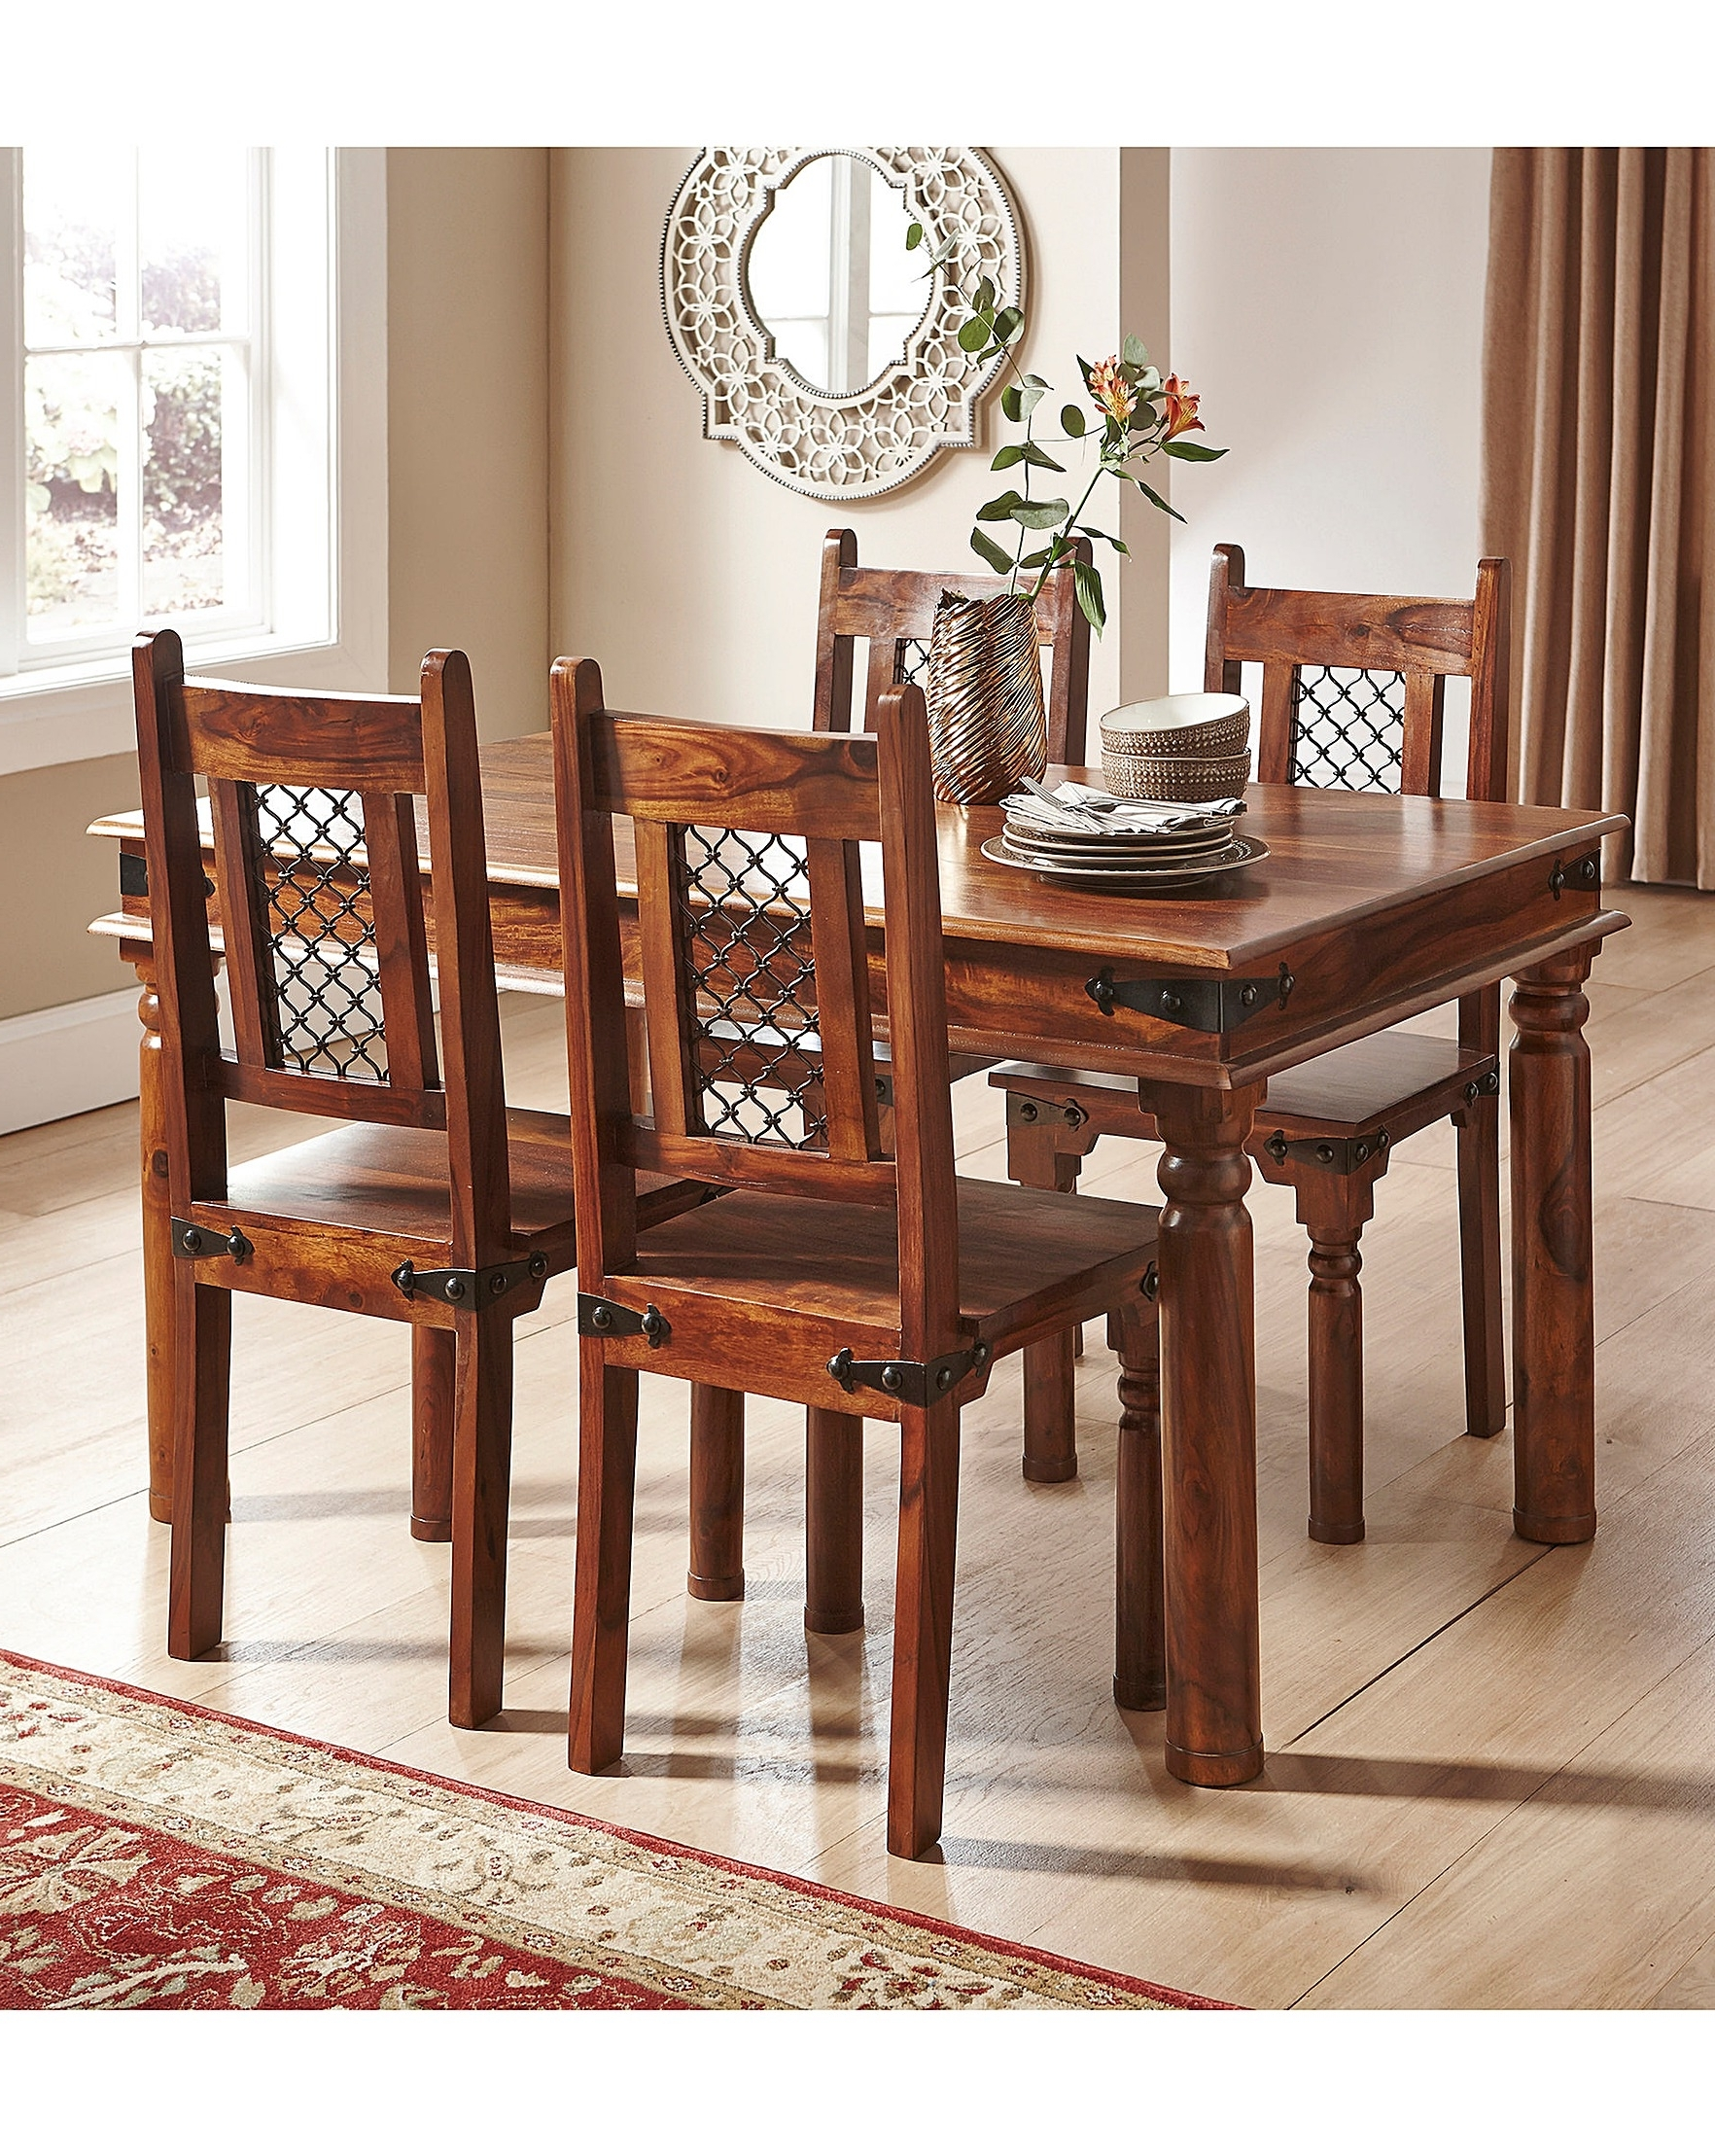 J D Williams With Sheesham Dining Tables And 4 Chairs (View 22 of 25)